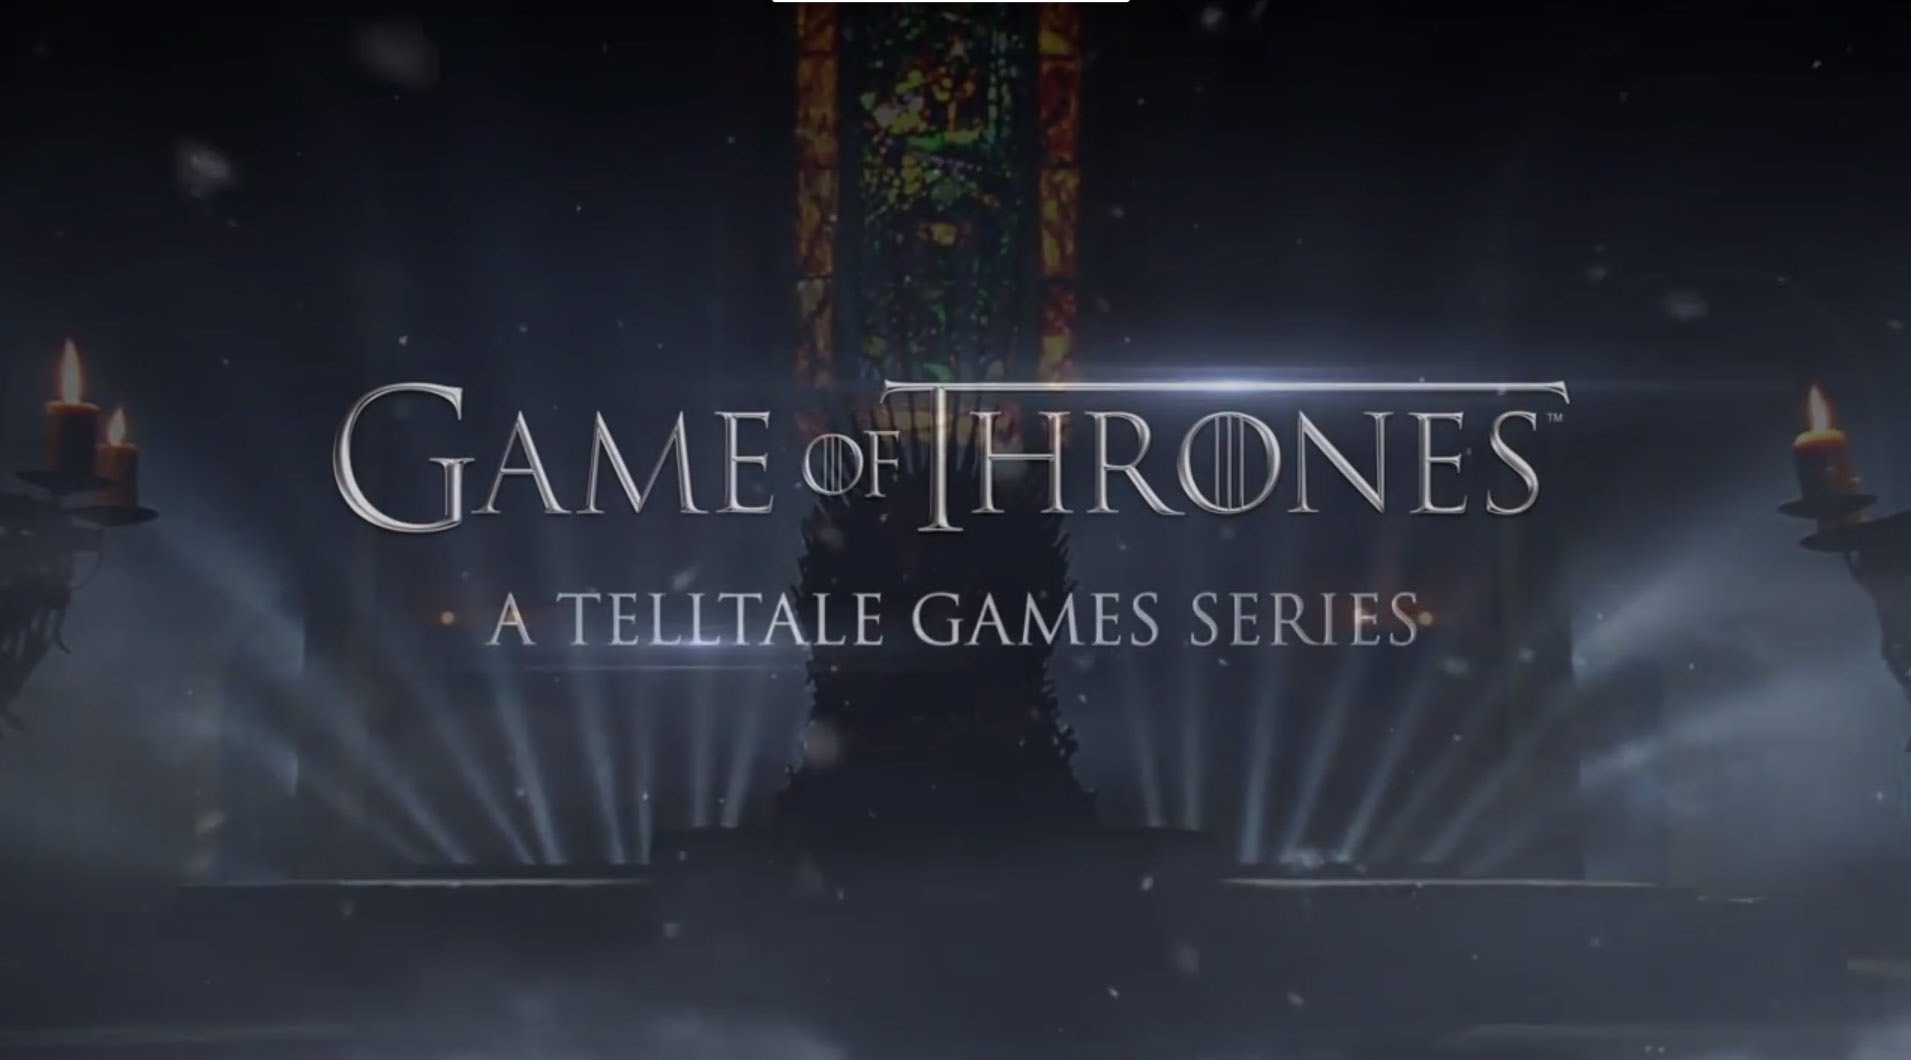 """""""  The music is excellent.  """"  -   Movie Pilot on Game of Thrones: Iron From Ice    """"  Filling the role of composer once again is Telltale favorite Jared Emerson-Johnson, whose grandiose melodies and swelling orchestrations accompany players across the continent of Westeros. The show's familiar intro theme is reproduced here, but even before that, Emerson-Johnson's hauntingly ephemeral and ponderous opening provides a perfect gateway into the fantasy world, and his songs complemented the remainder of my journey without ever becoming overbearing. They consistently provide an aural backdrop for the sweeping kingdom full of knights, sellswords, and political schemes, while never actually sounding like background music.  """"  -   Adventure Gamers on Game of Thrones: Iron From Ice    """"  Authentic. That's how   Game of Thrones sounds. While Ramin Djawadi's iconic theme is kept intact for the opening credits sequence, composer Jared Emerson-Johnson does a fine job of filling the gaps. All the horror and raw emotion of the show is replicated quite well. The voicework is faultless  .""""  -   Game Vortex on Game of Thrones: Iron From Ice    """"  There is plenty of original music mixed in that fits perfectly in place  .""""  -   Tech Times on Game of Thrones: Iron From Ice    """"  ...an excellent score by Jared Emerson-Johnson, which features an absolutely beautiful song sung in-game to close out the episode .""""-  Push Square    on Game of Thrones: The Lost Lords    """"  The music is often atmospheric and emotional, designed to immerse players in the drama of the moment  .""""  -  Tom's Guide   on Game of Thrones: The Lost Lords       """"  The audio design is superb, especially one haunting song that plays toward the end of the episode  .""""  -  Cheat Code Central   on Game of Thrones: The Lost Lords    """"  Muy buena banda sonora..  .""""  -  MeriStation   on Game of Thrones: The Sword in the Darkness     """"  Its score, written by Jared Emerson-Johnson, is very medieval, fitting in nicely with the worl"""